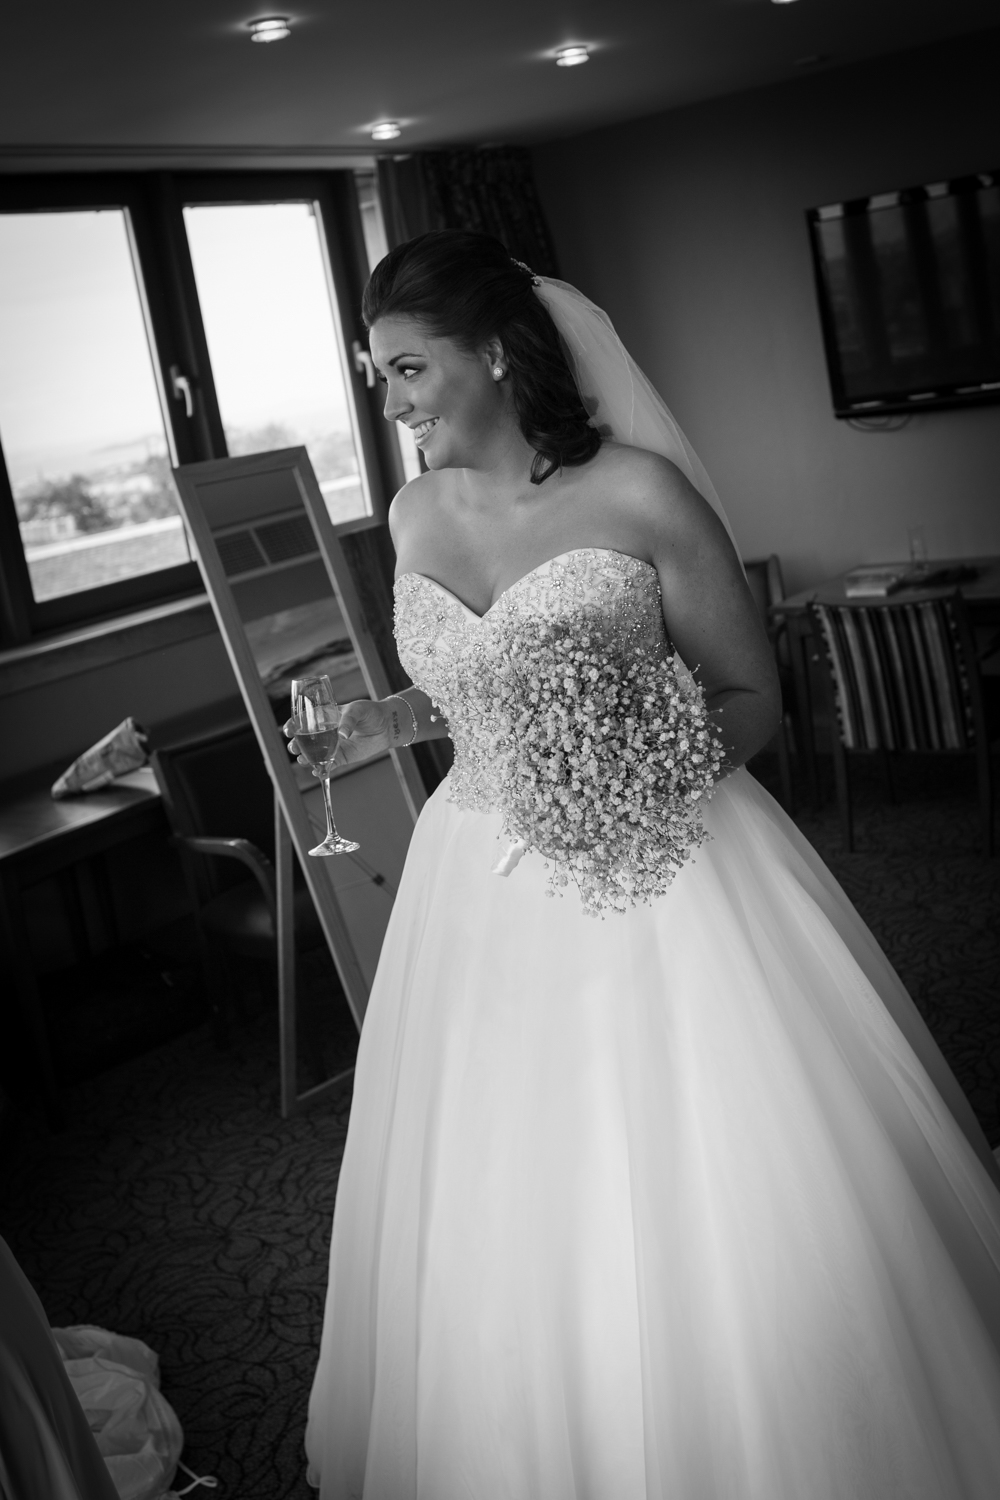 Joanne and Craig's wedding day-18.jpg